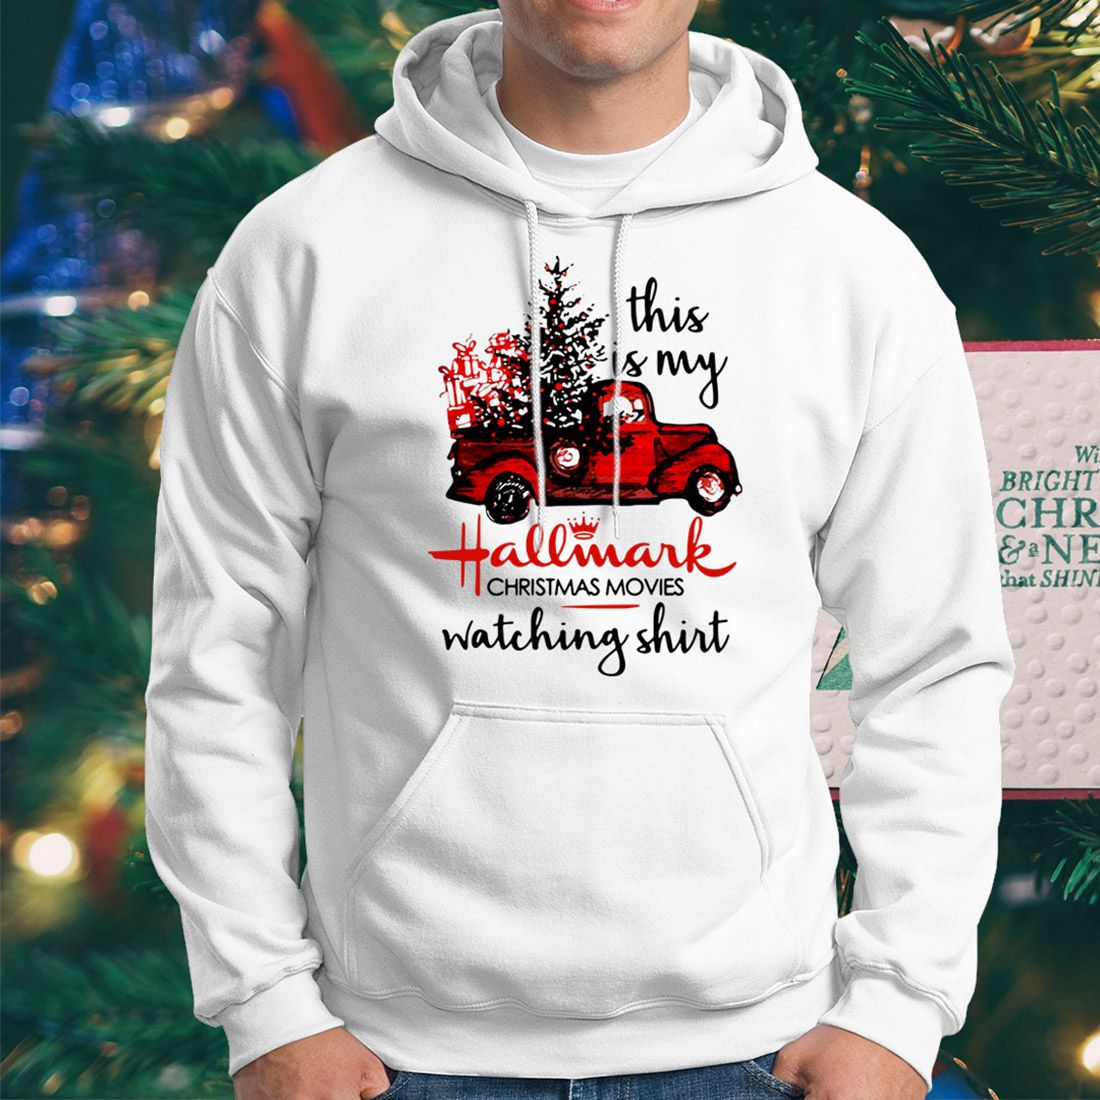 bde99ee59 This is my Hallmark christmas movies watching shirt, hoodie and ...